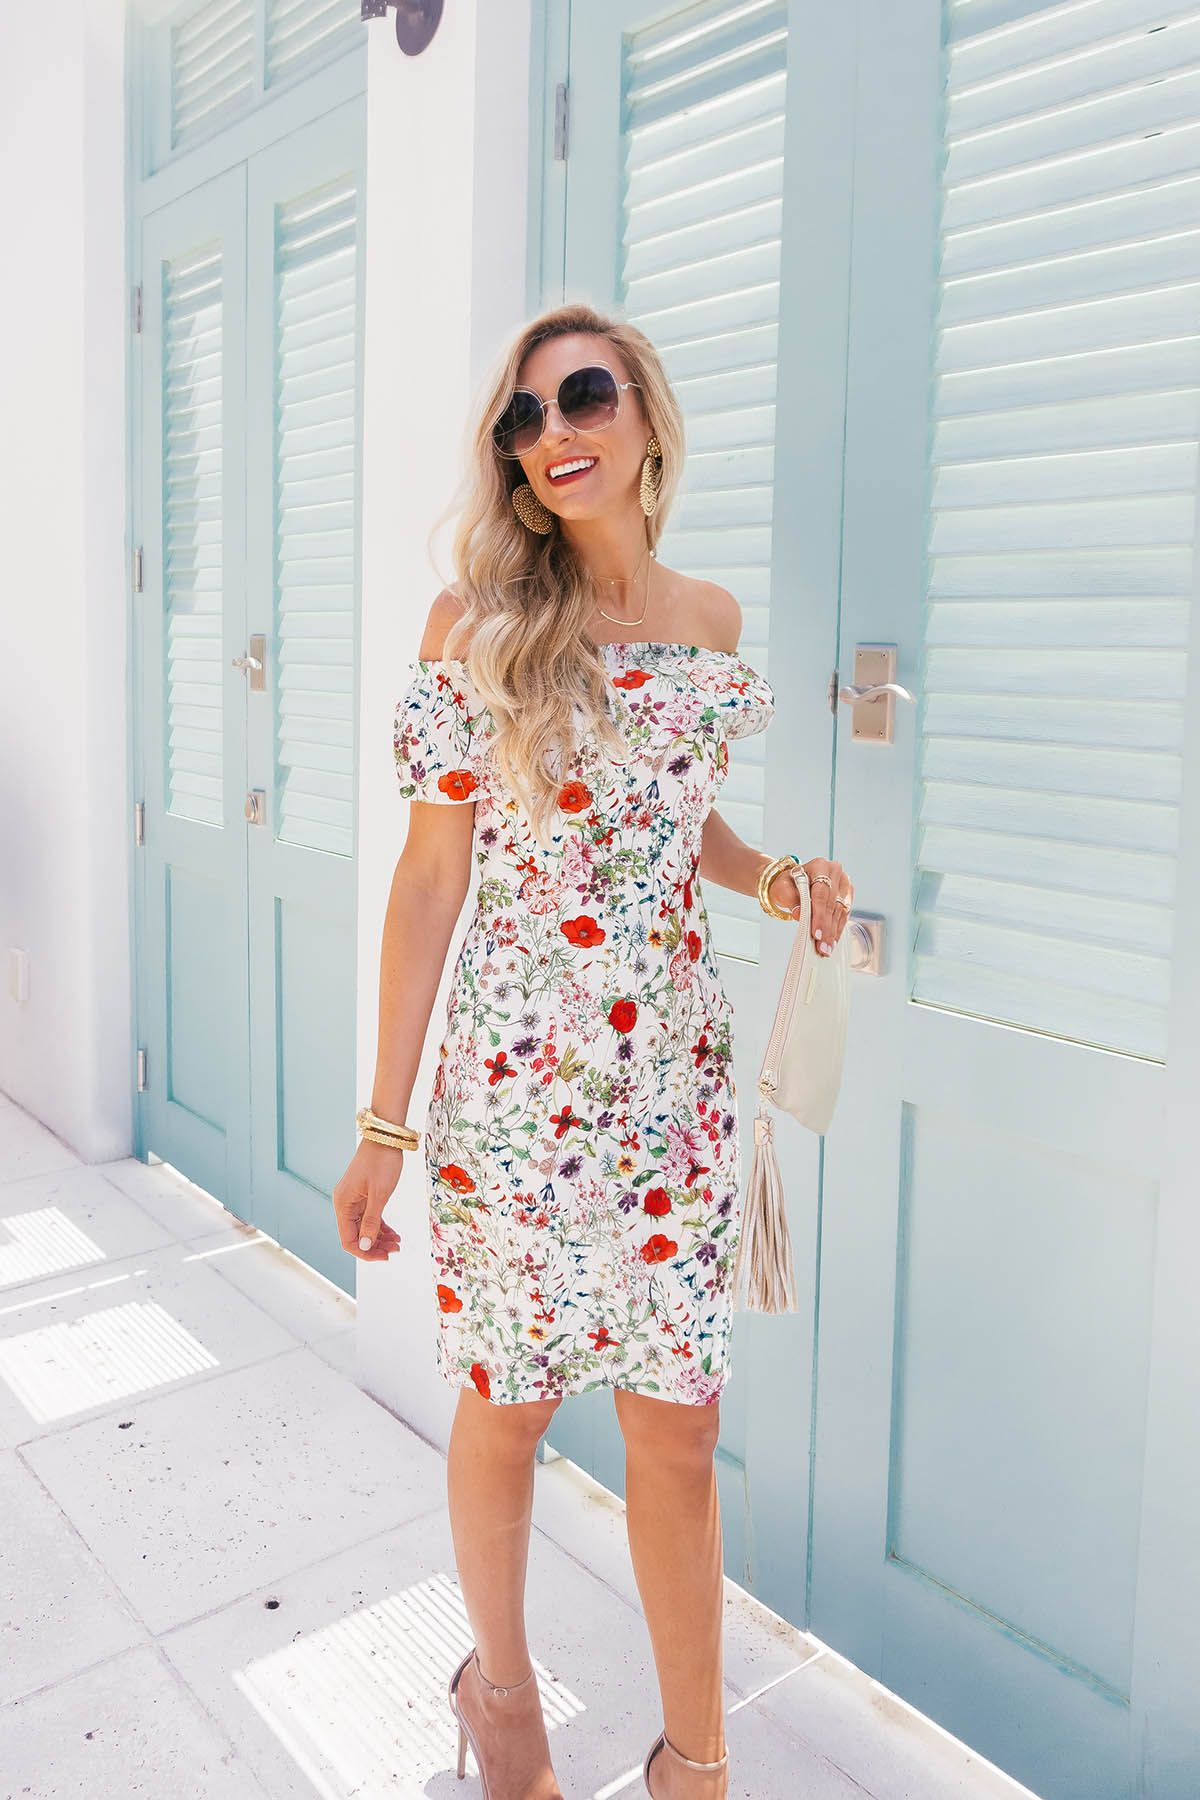 Everyday Dresses From Zappos Adrianna Papell Dresses At Zappos Everyday Dresses Dresses Adrianna Papell Dresses [ 1800 x 1200 Pixel ]